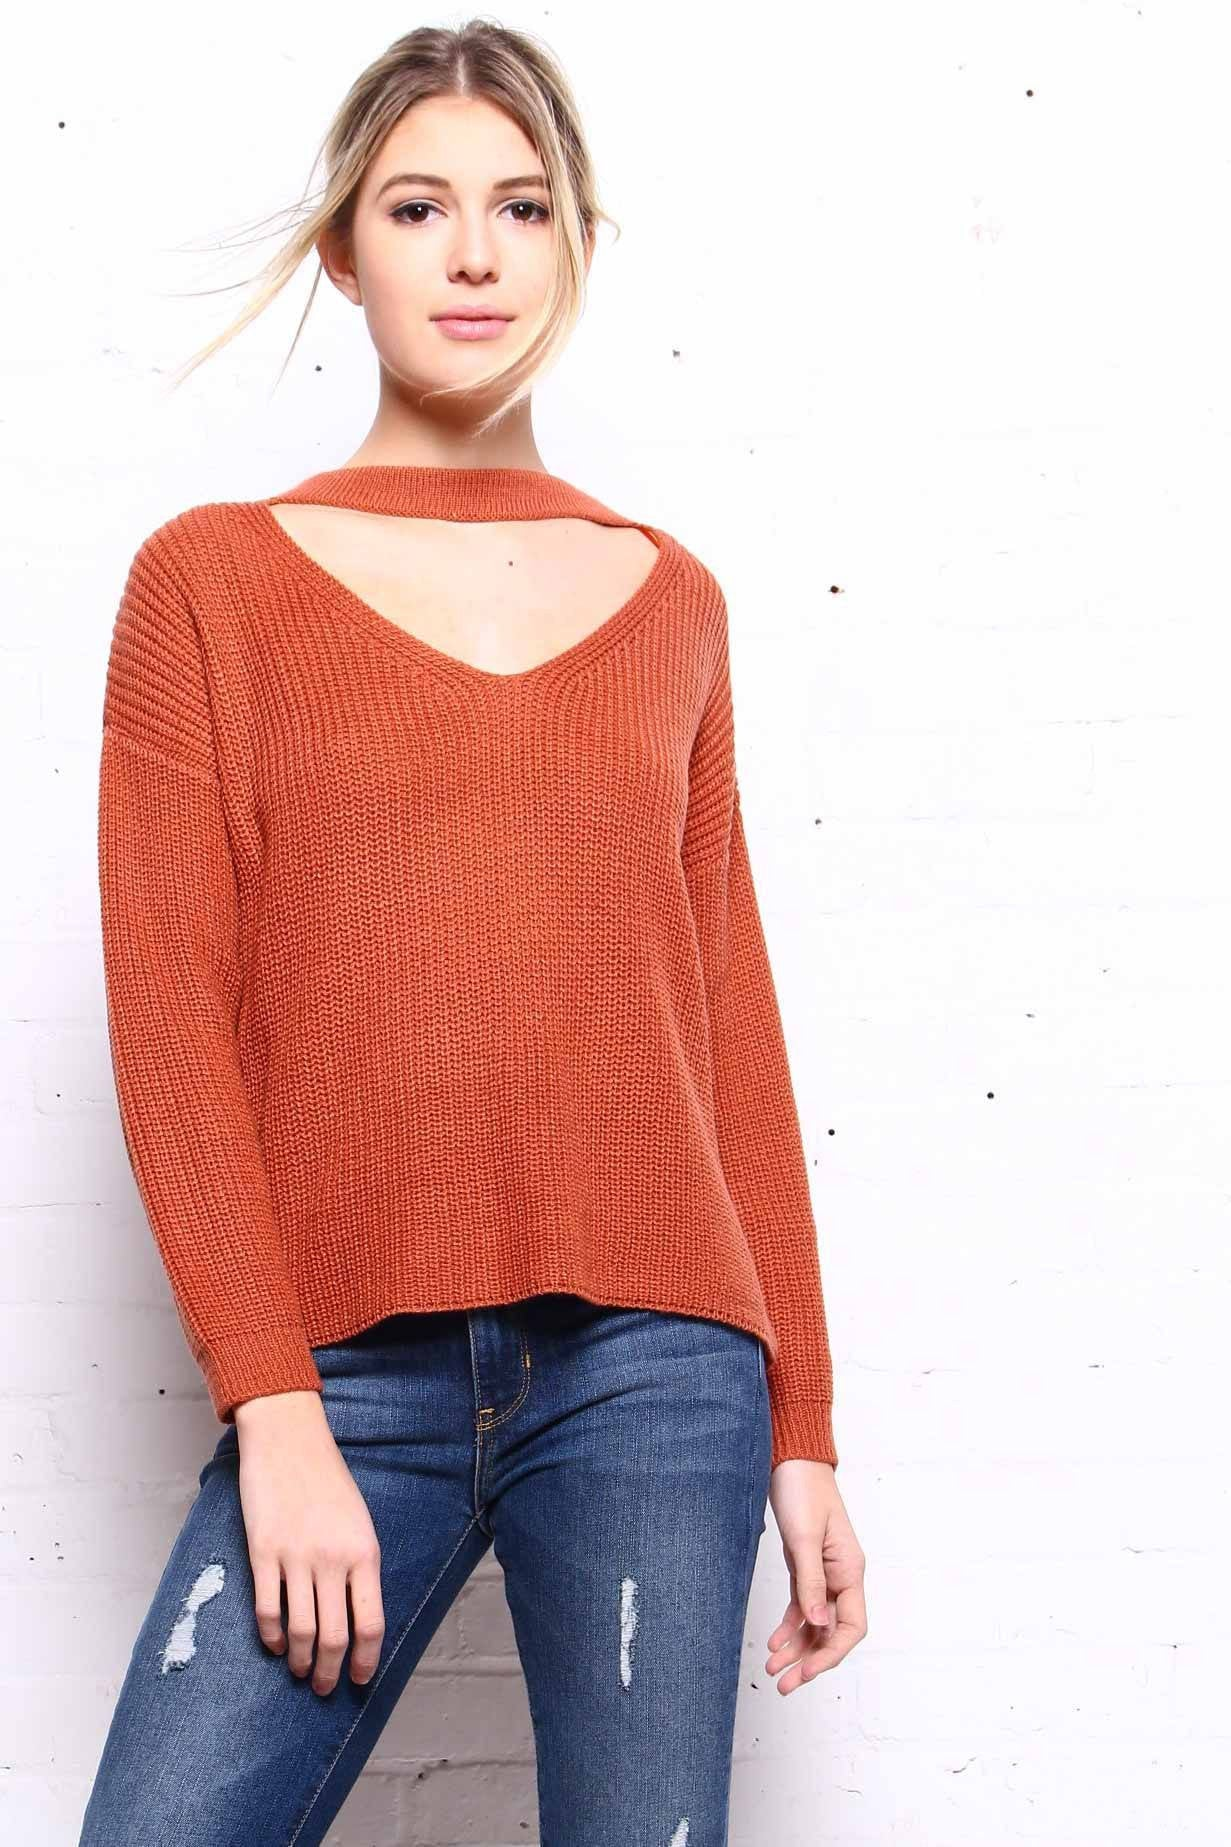 Brave Front Choker Sweater - Rust